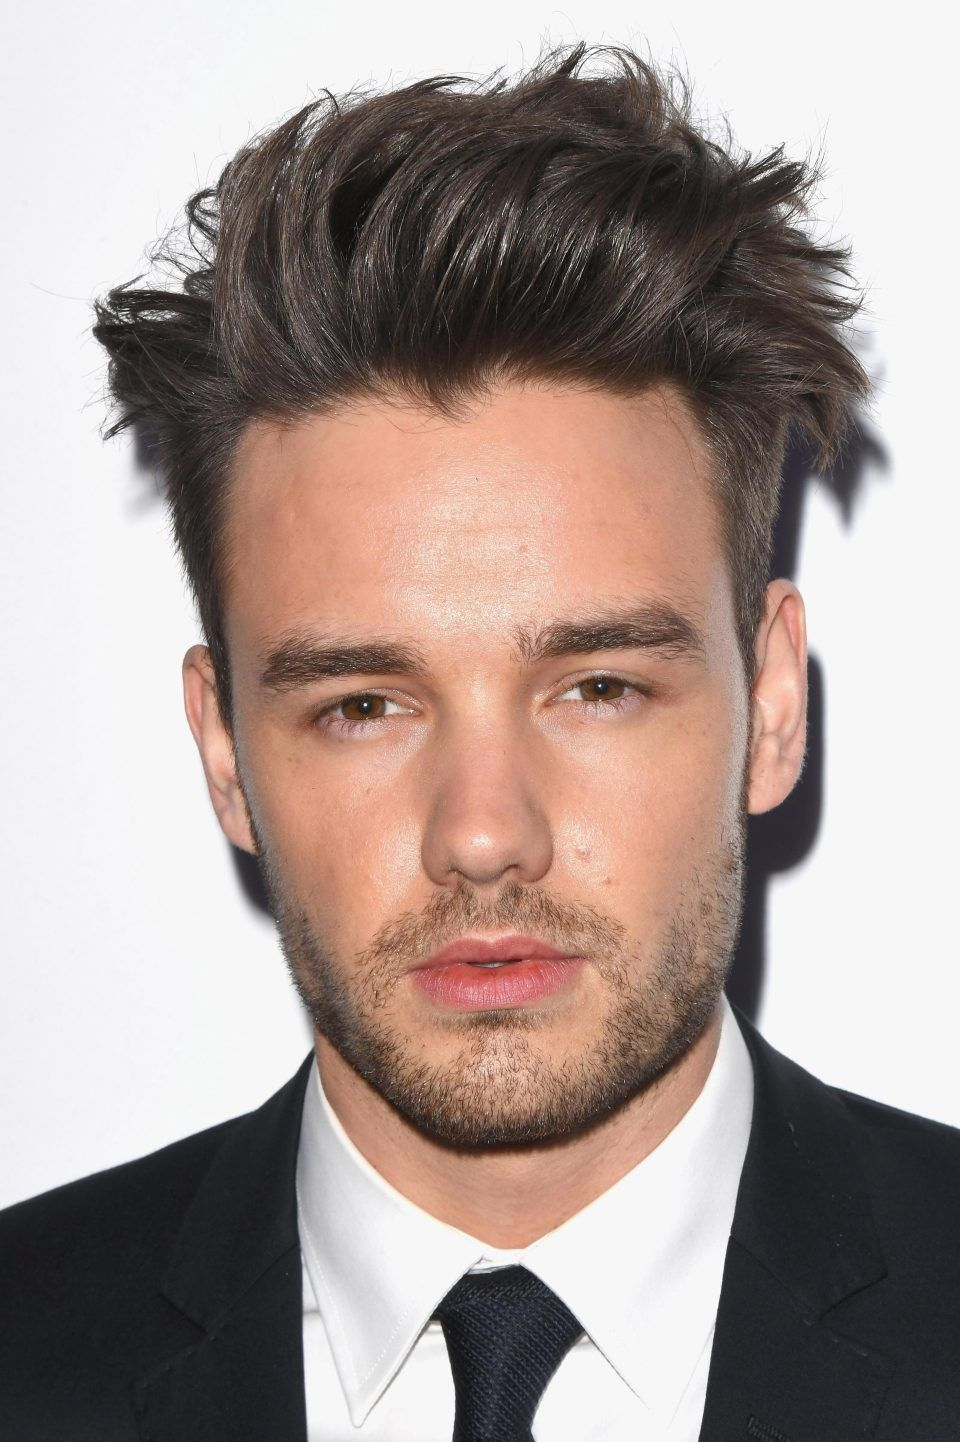 Liam Payne reveals being in One Direction 'nearly killed' him as he admits fears over going solo #liampayne